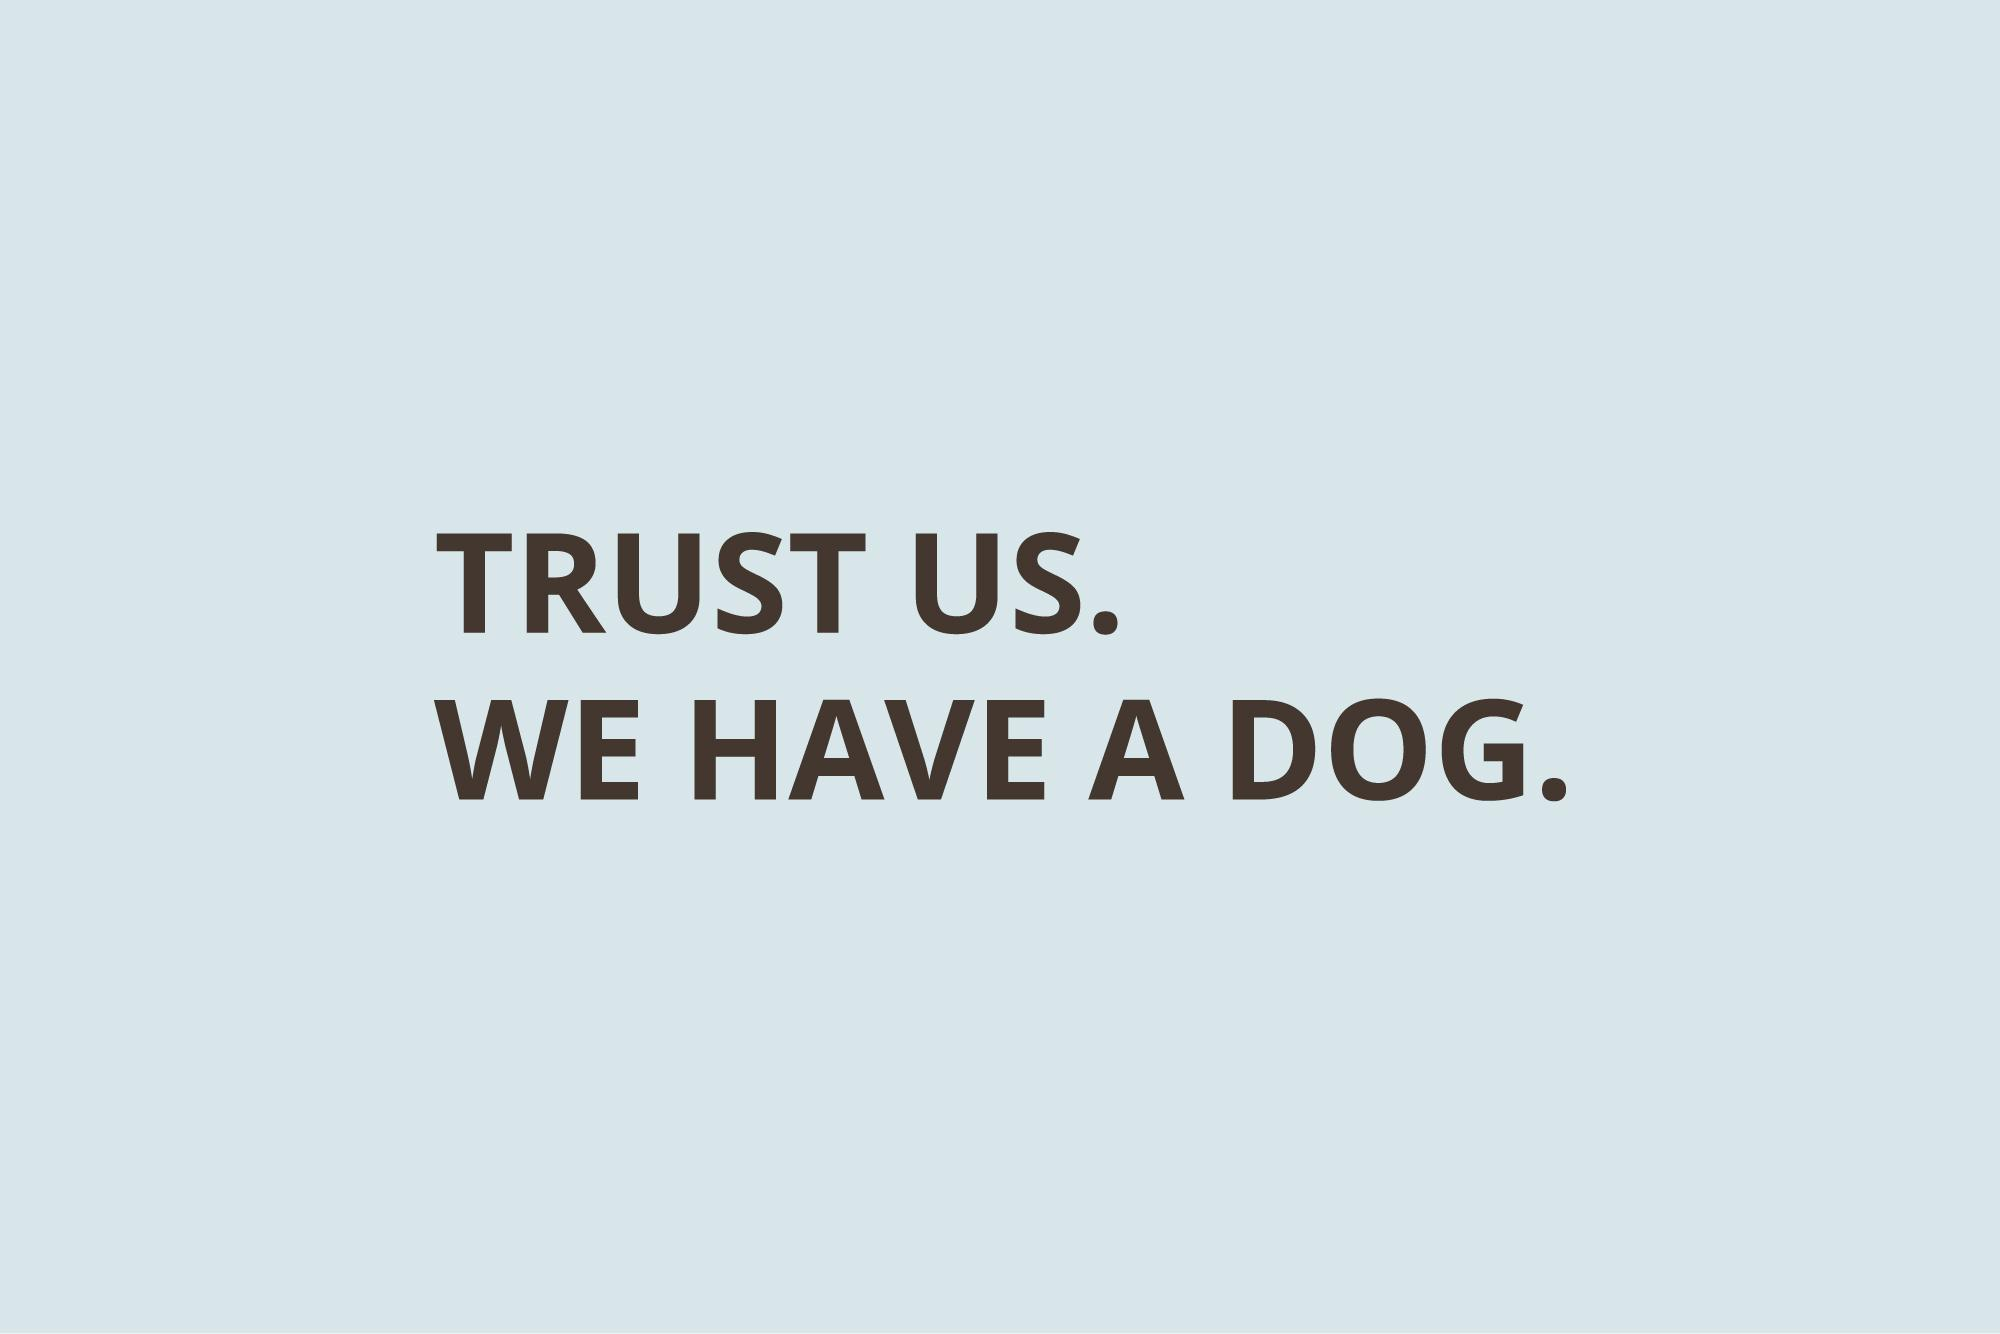 Helland Law Group tagline: Trust us we have a dog.